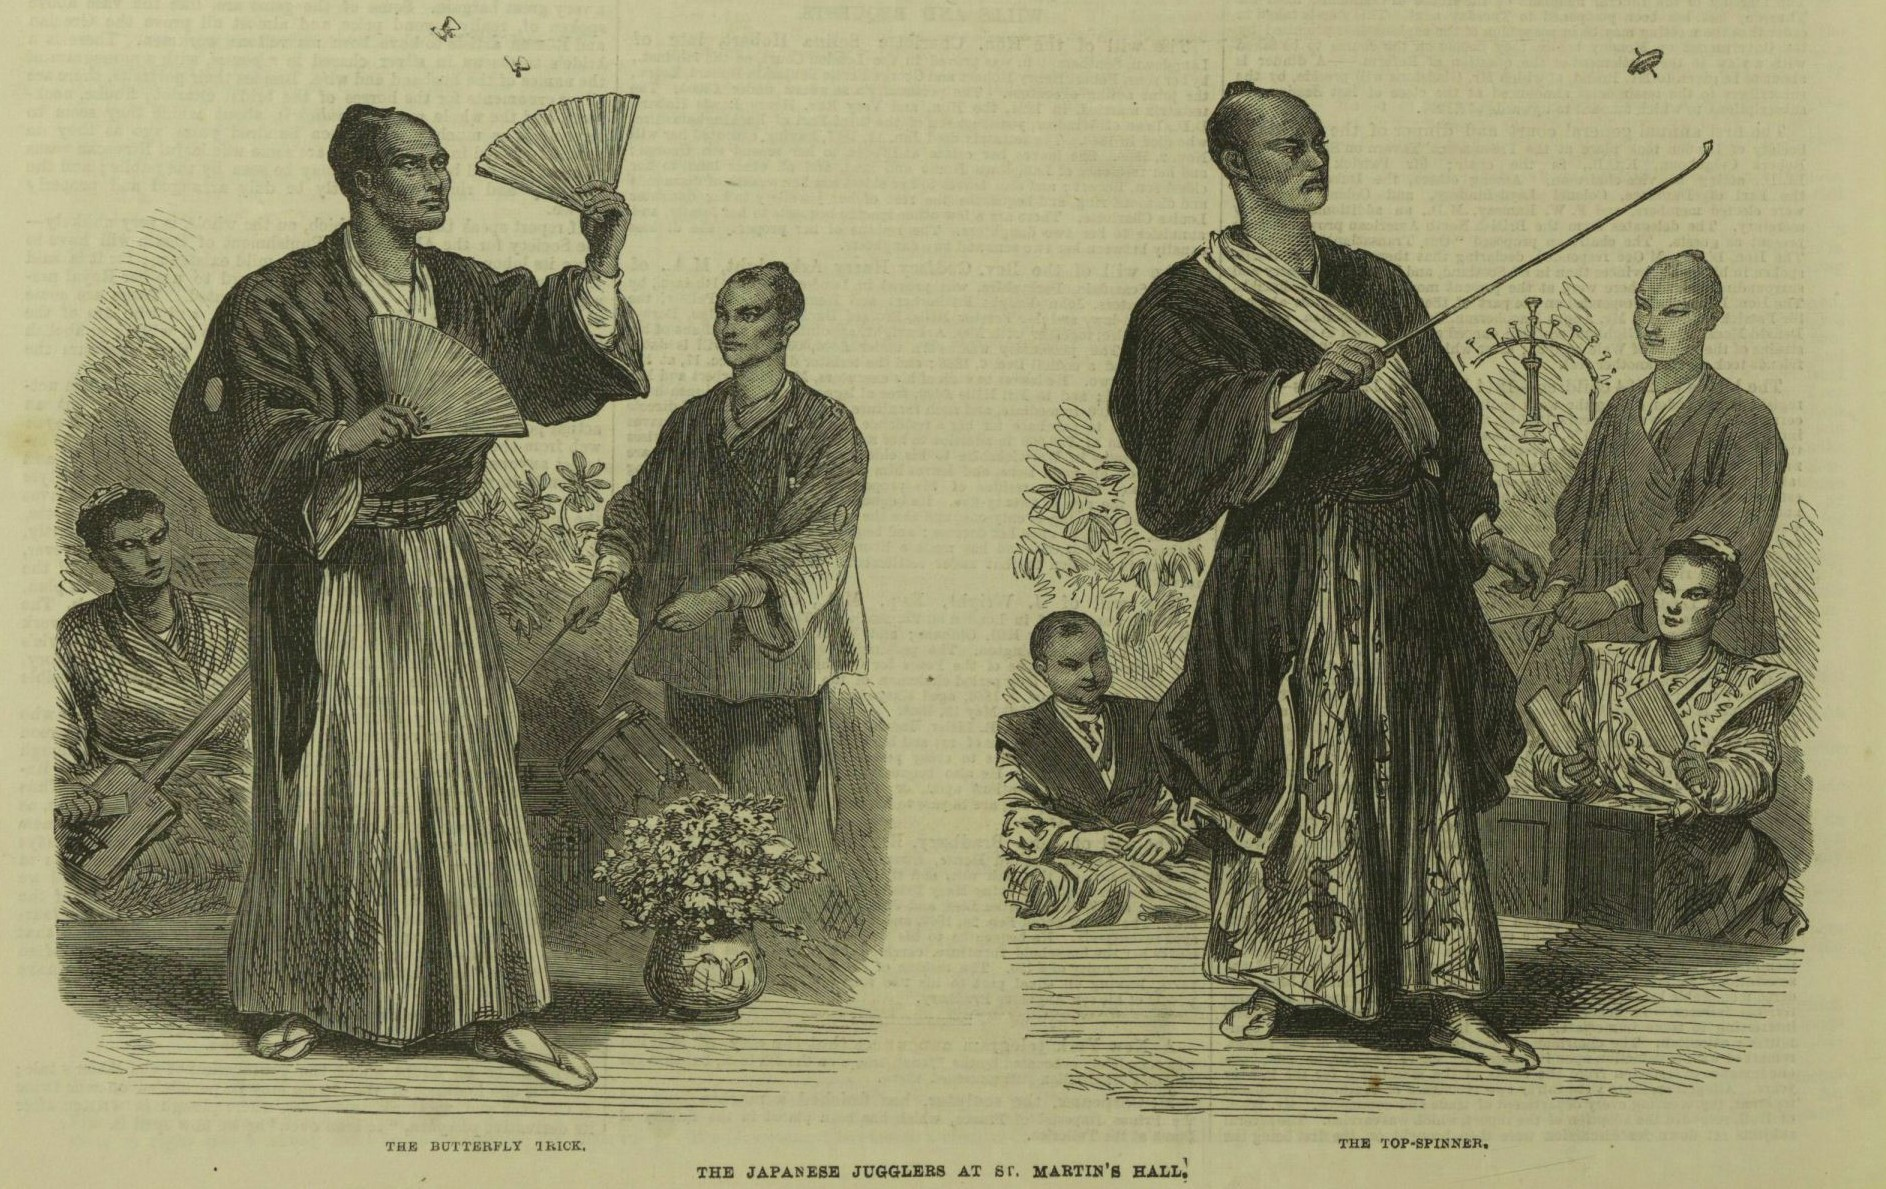 """The Japanese Jugglers."" Illustrated London News, 23 Feb. 1867, p. 176. The Illustrated London News Historical Archive, 1842-2003"